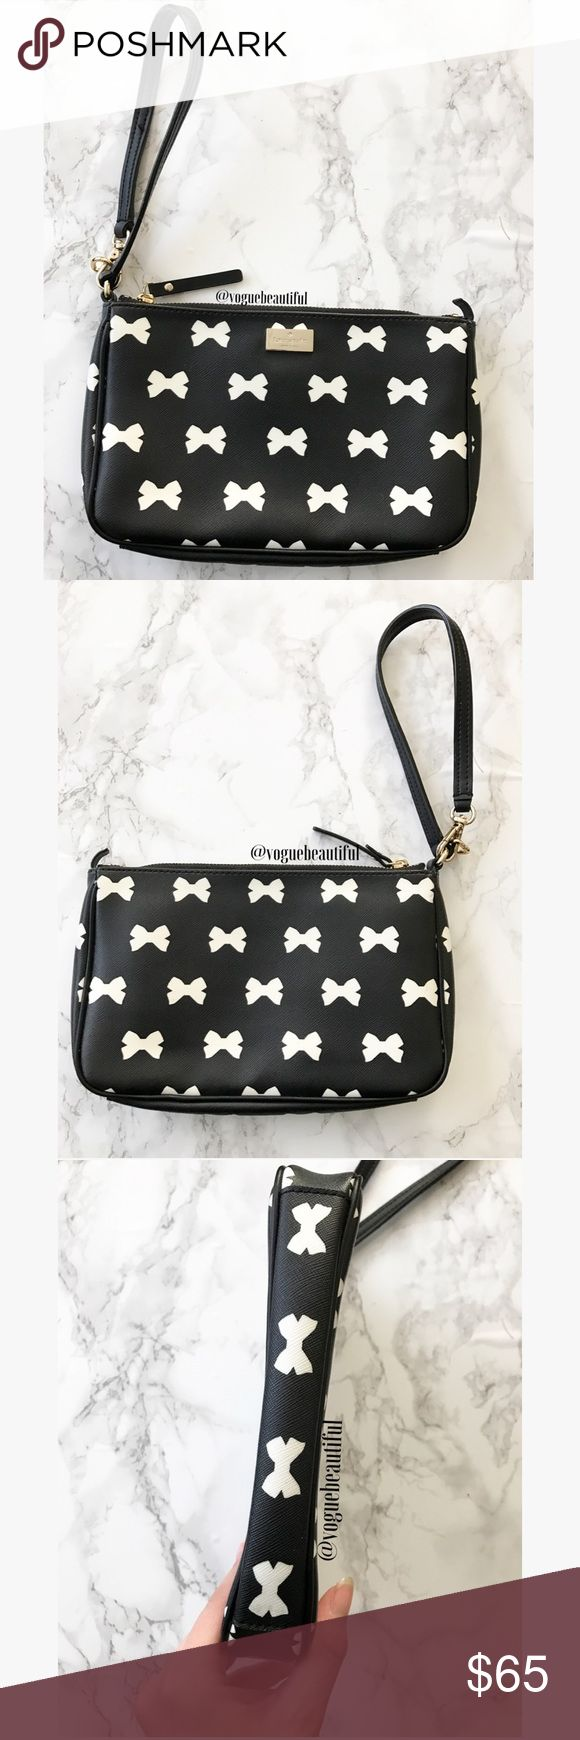 Kate Spade Brightwater Drive Linet Bows Wristlet Super cute 100% authentic Kate Spade bright water drive linet bows wristlet - great preloved condition, only signs of wear are some hairline scratches to KS nameplate & the loop to make it a shoulder bag is broken but perfectly functional as a wristlet - interior features signature KS polka dot lining & 4 card slots - DIMENSIONS: 8.75 inches across x 5.5 in. height - for reference my iPhone 7 Plus fits in here comfortably - !!NO TRADES!! kate…